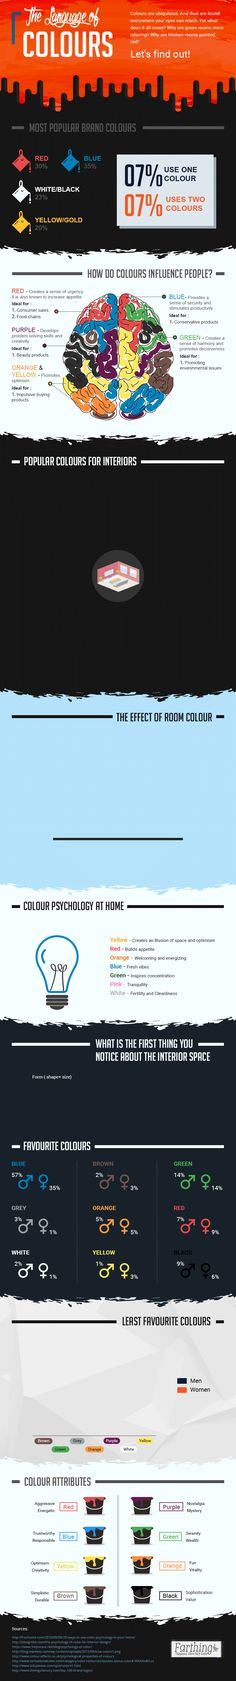 Learn how to use color psychology from a cool animated infographic! You'll understand each color's unique impact on human moods, behavior, and performance. For business branding or interior design tips: How to use color for your business or in the home. Click to blog for more color tips!